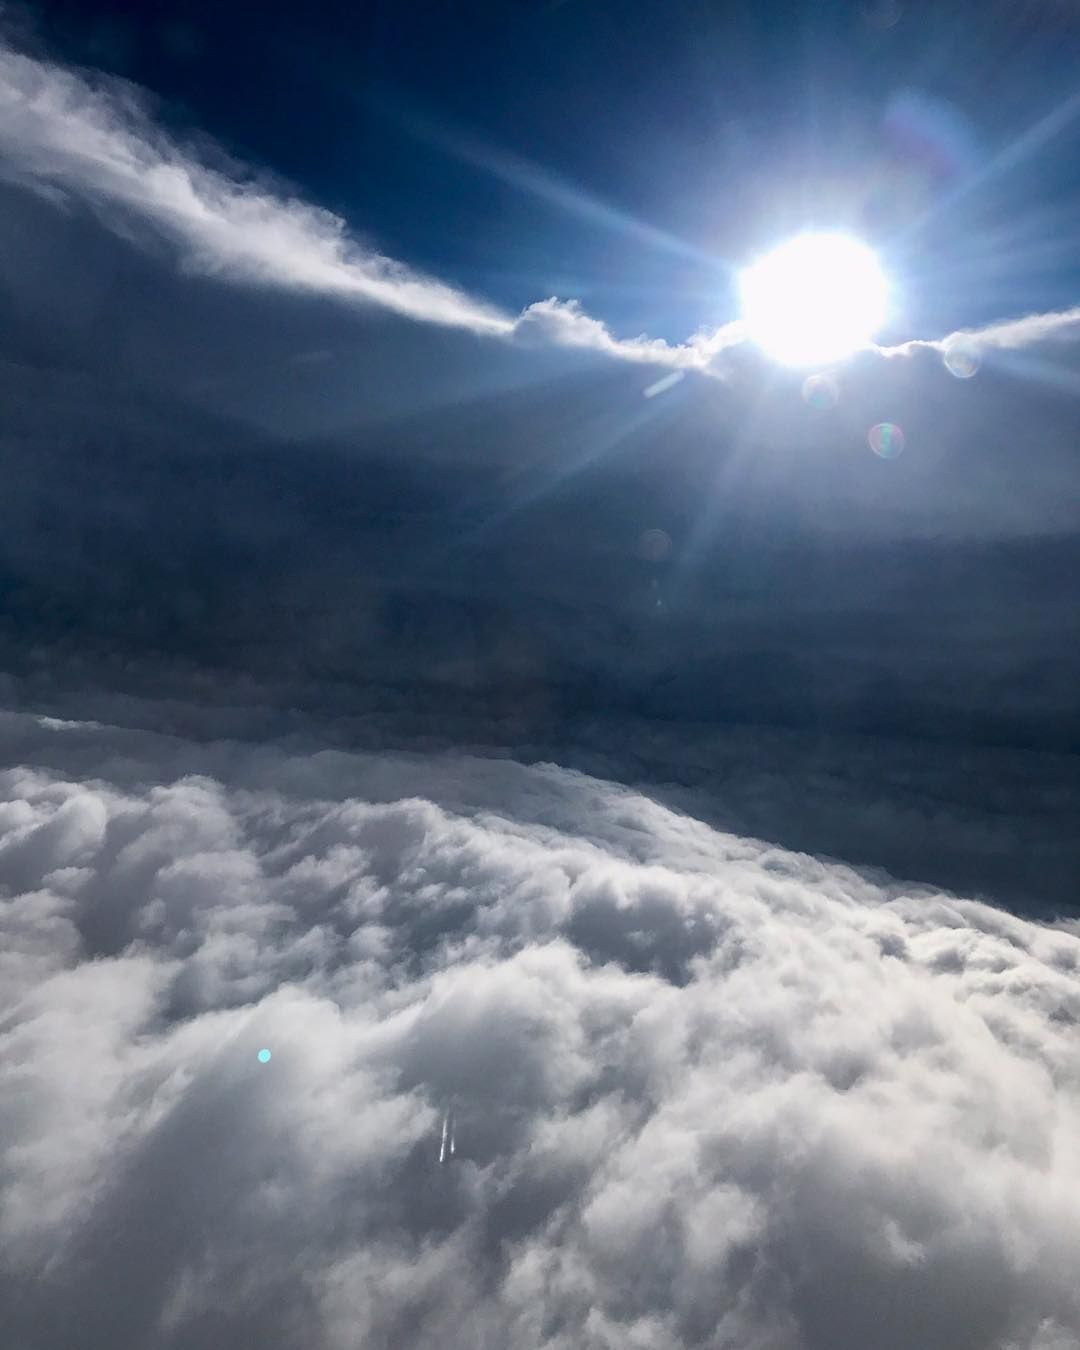 A Pretty Incredible And Surreal View From Inside Hurricane Irma S Eye On Wednesday As Take By Noaa Hurricane Hunt Capture Photo Cool Photos Above The Clouds